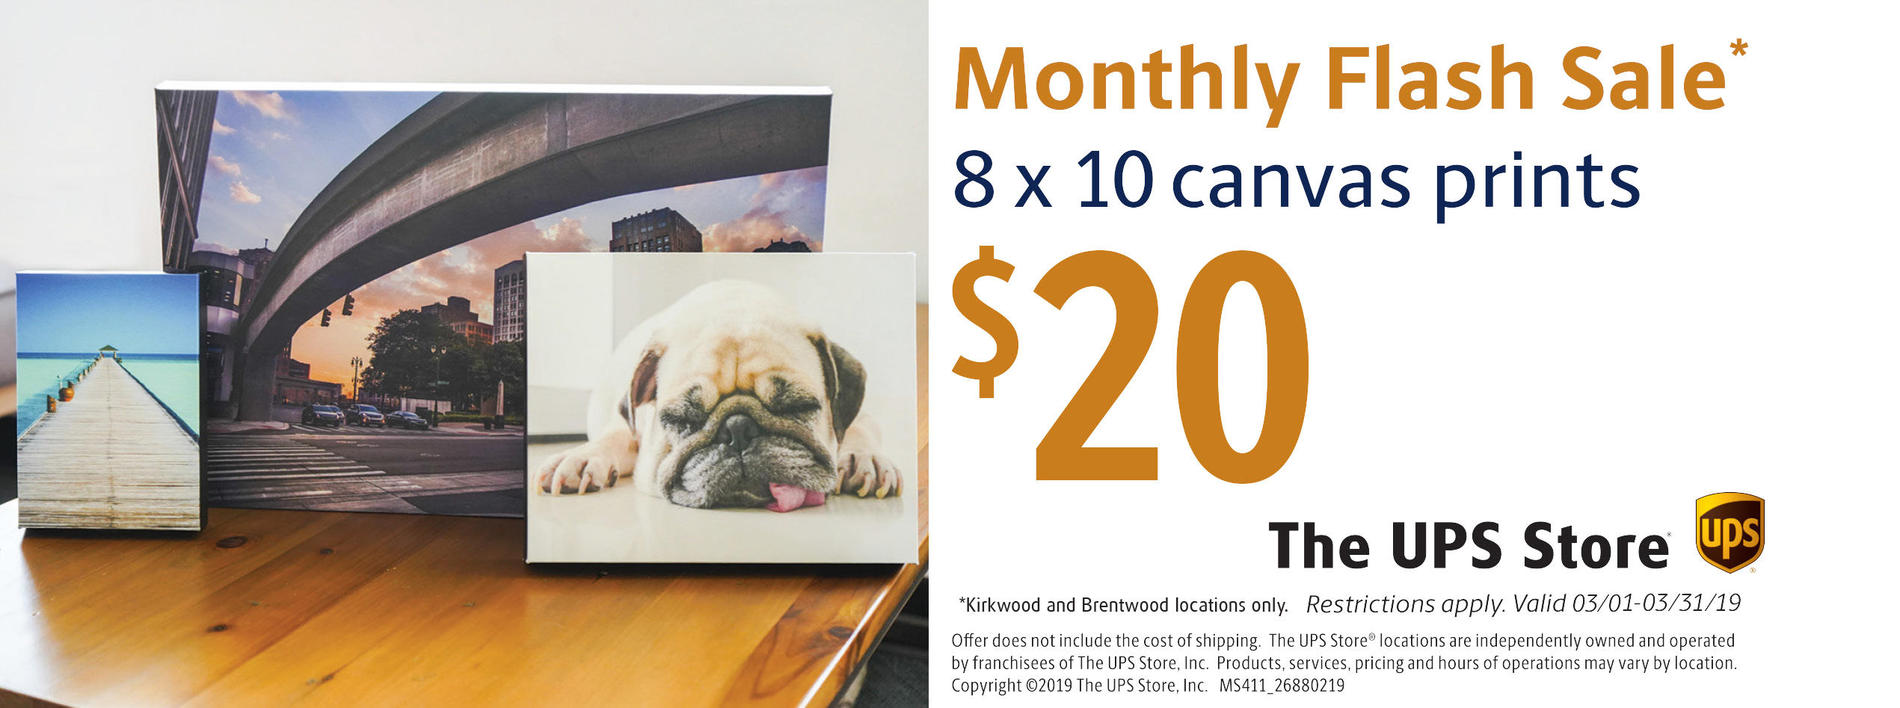 The UPS Store coupon for 8x10 canvas prints only $20